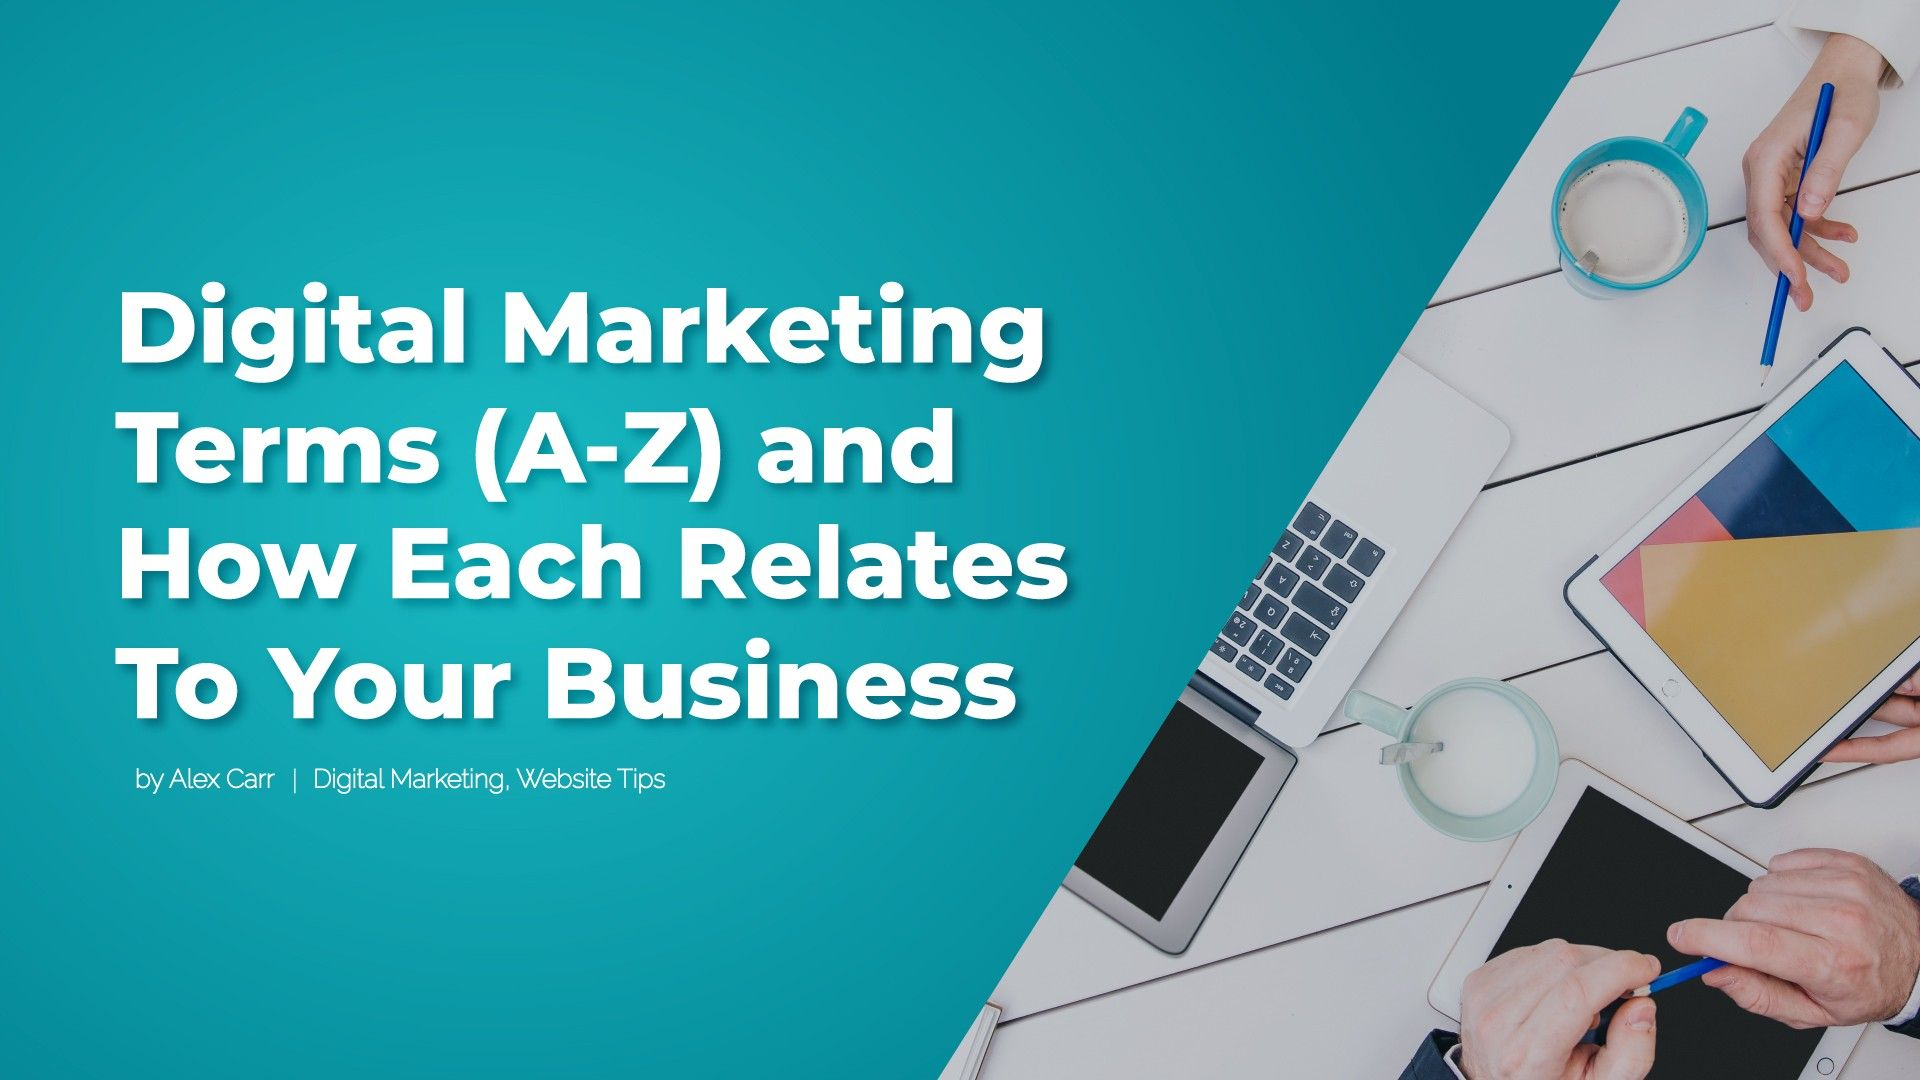 Digital Marketing Terms (A-Z) and How Each Relates To Your Business